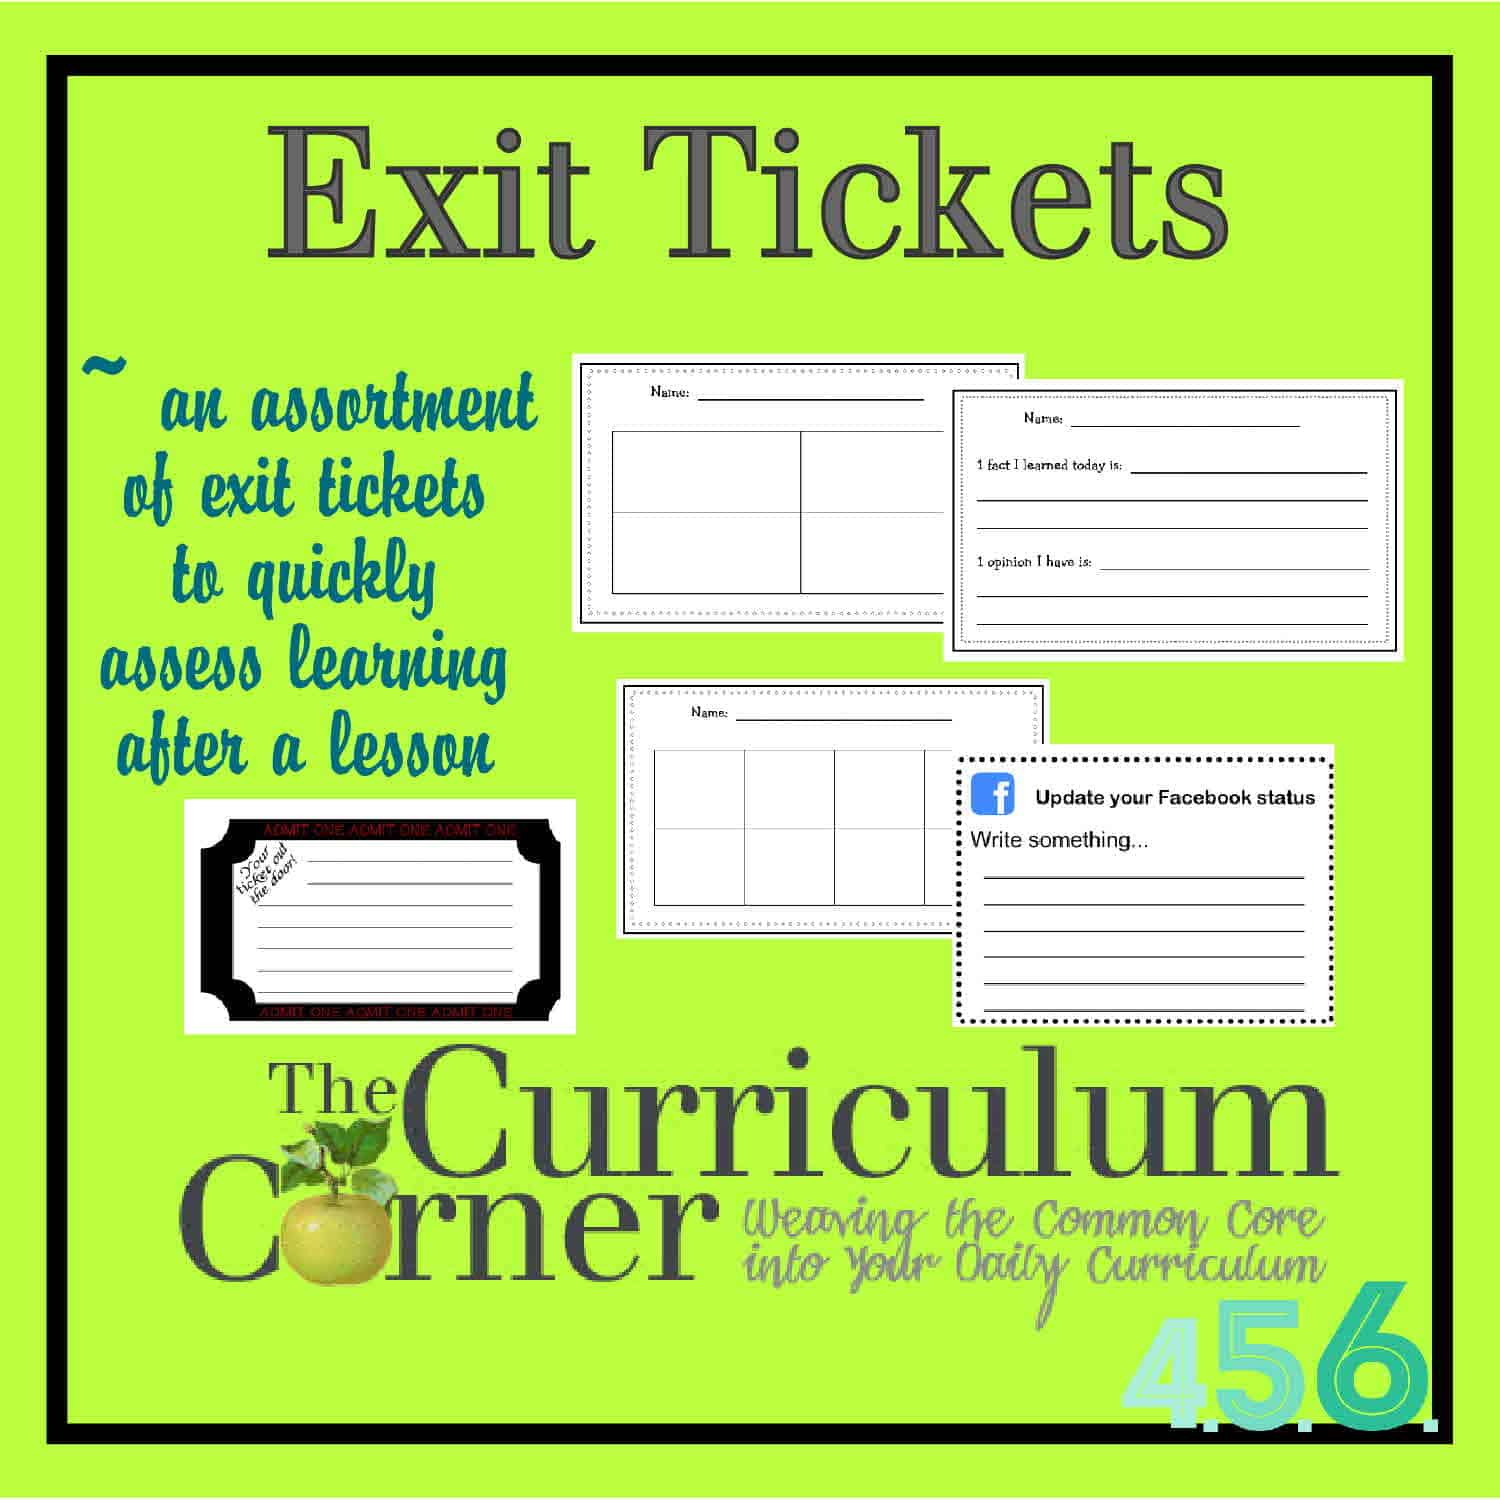 photo regarding Printable Exit Tickets identify Exit Tickets - The Curriculum Corner 4-5-6